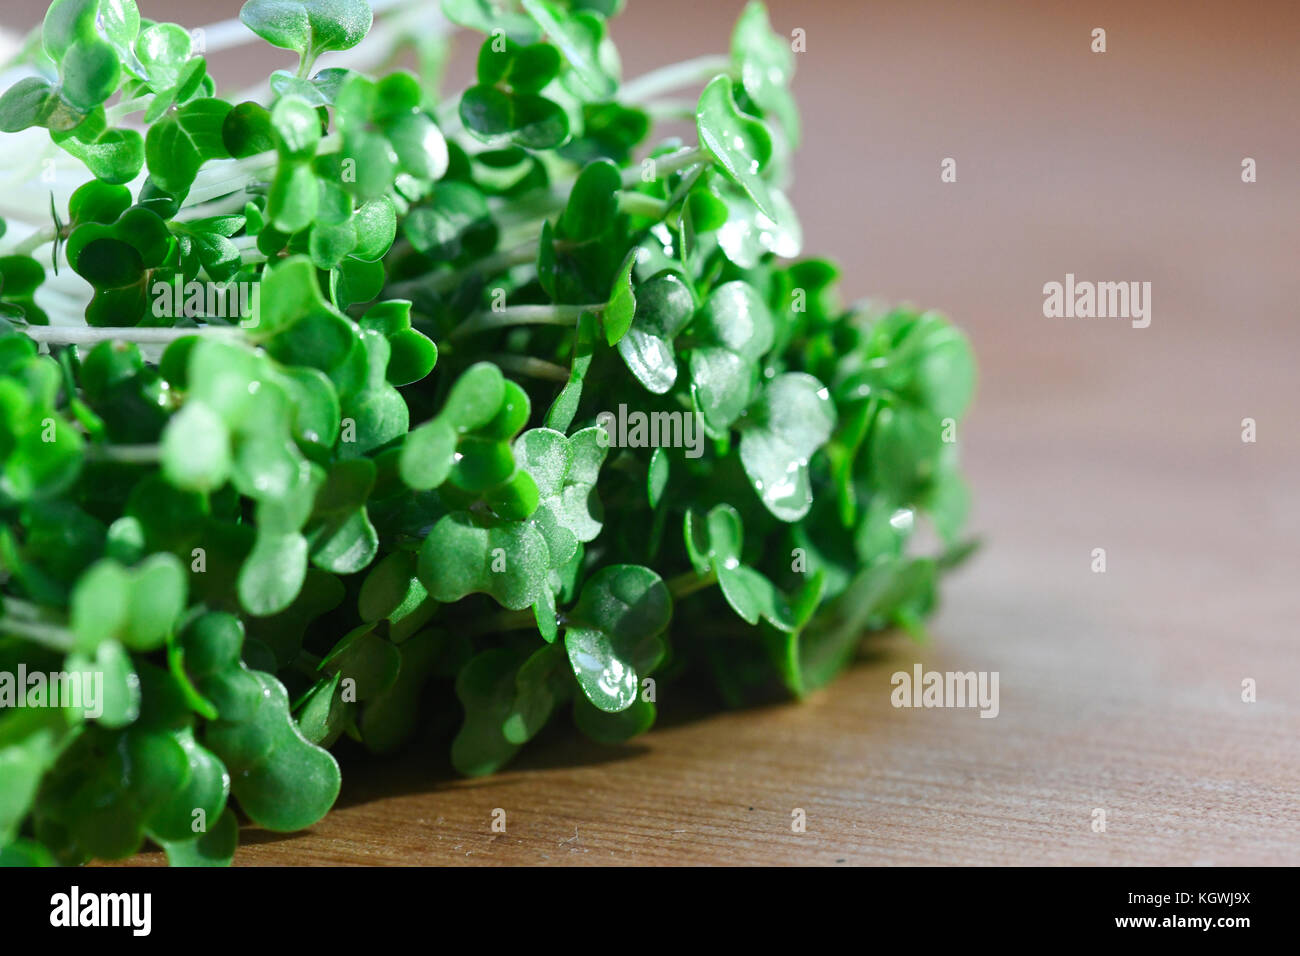 macro image of cut  organic cress used for salads and plant based meals a herb with health benefits , shot in a - Stock Image